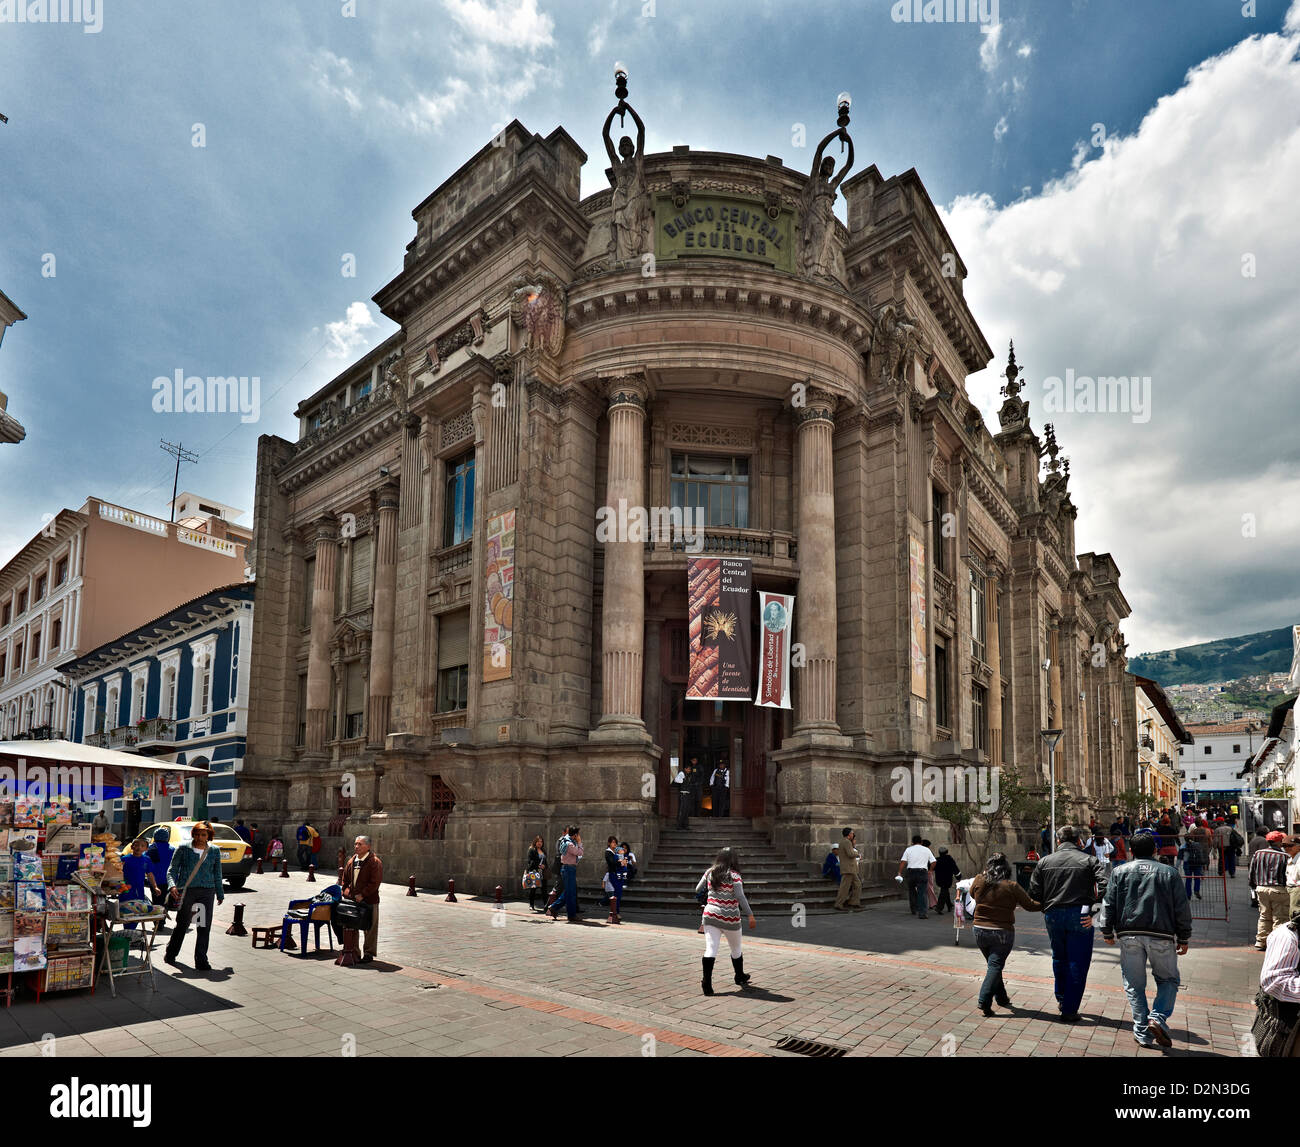 Banco Central del Ecuador or Central Bank, historical center of Quito, Ecuador Stock Photo